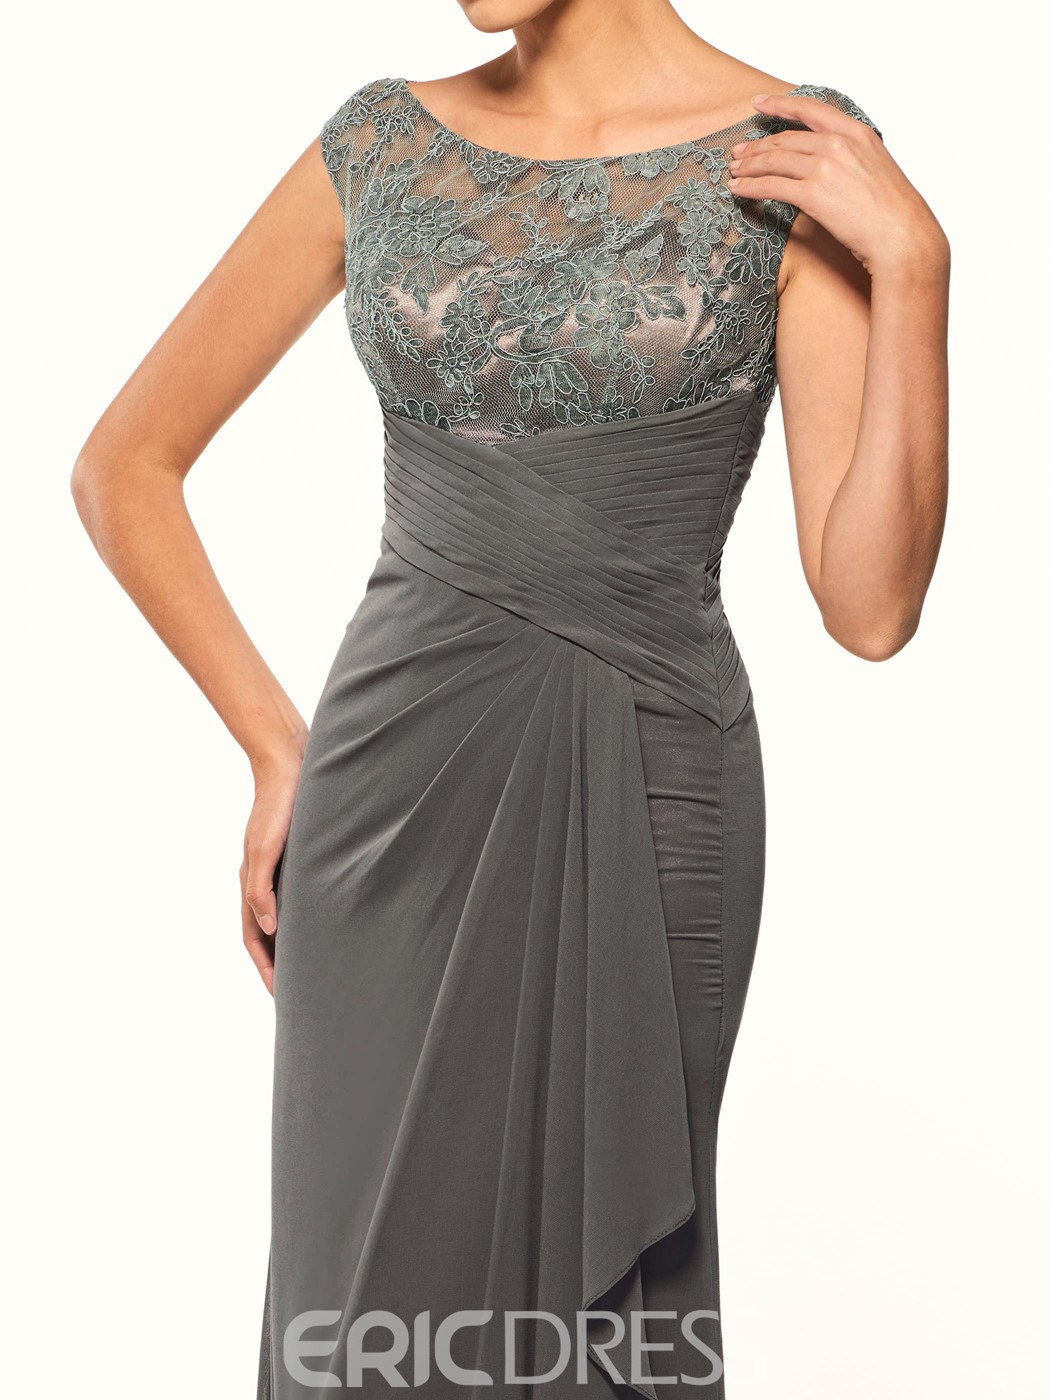 Ericdress Long Scoop Sleeveless Elegant Lace Mother of the Bride Dress